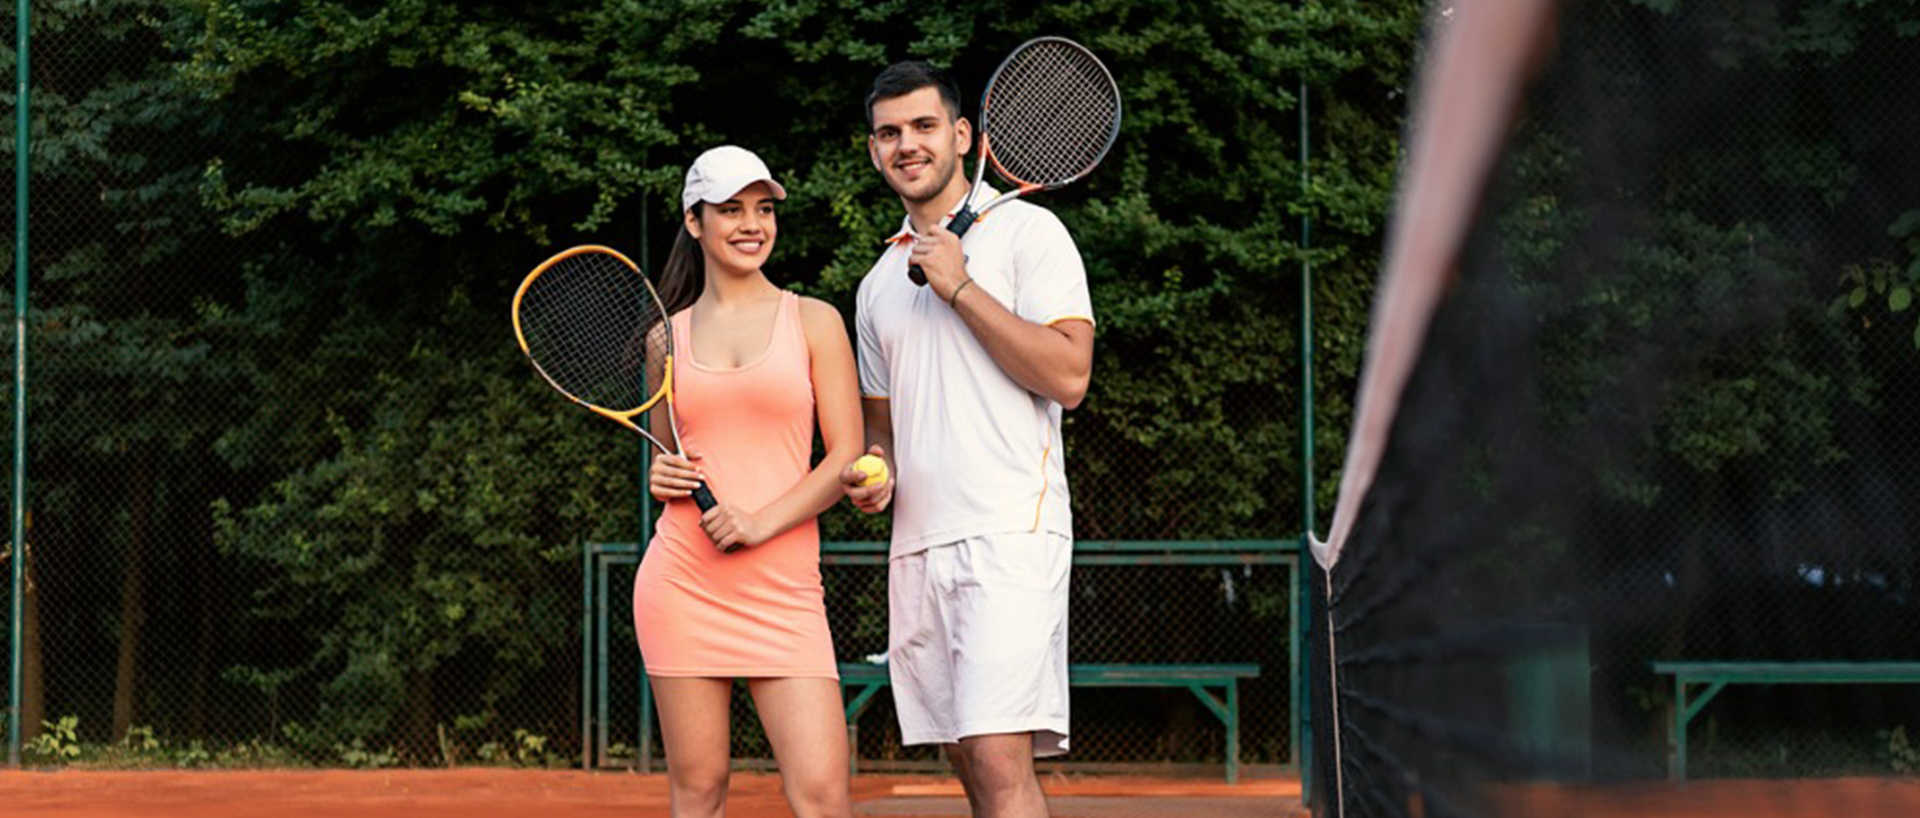 A man and a woman standing next to each other on a tennis court holding tennis rackets